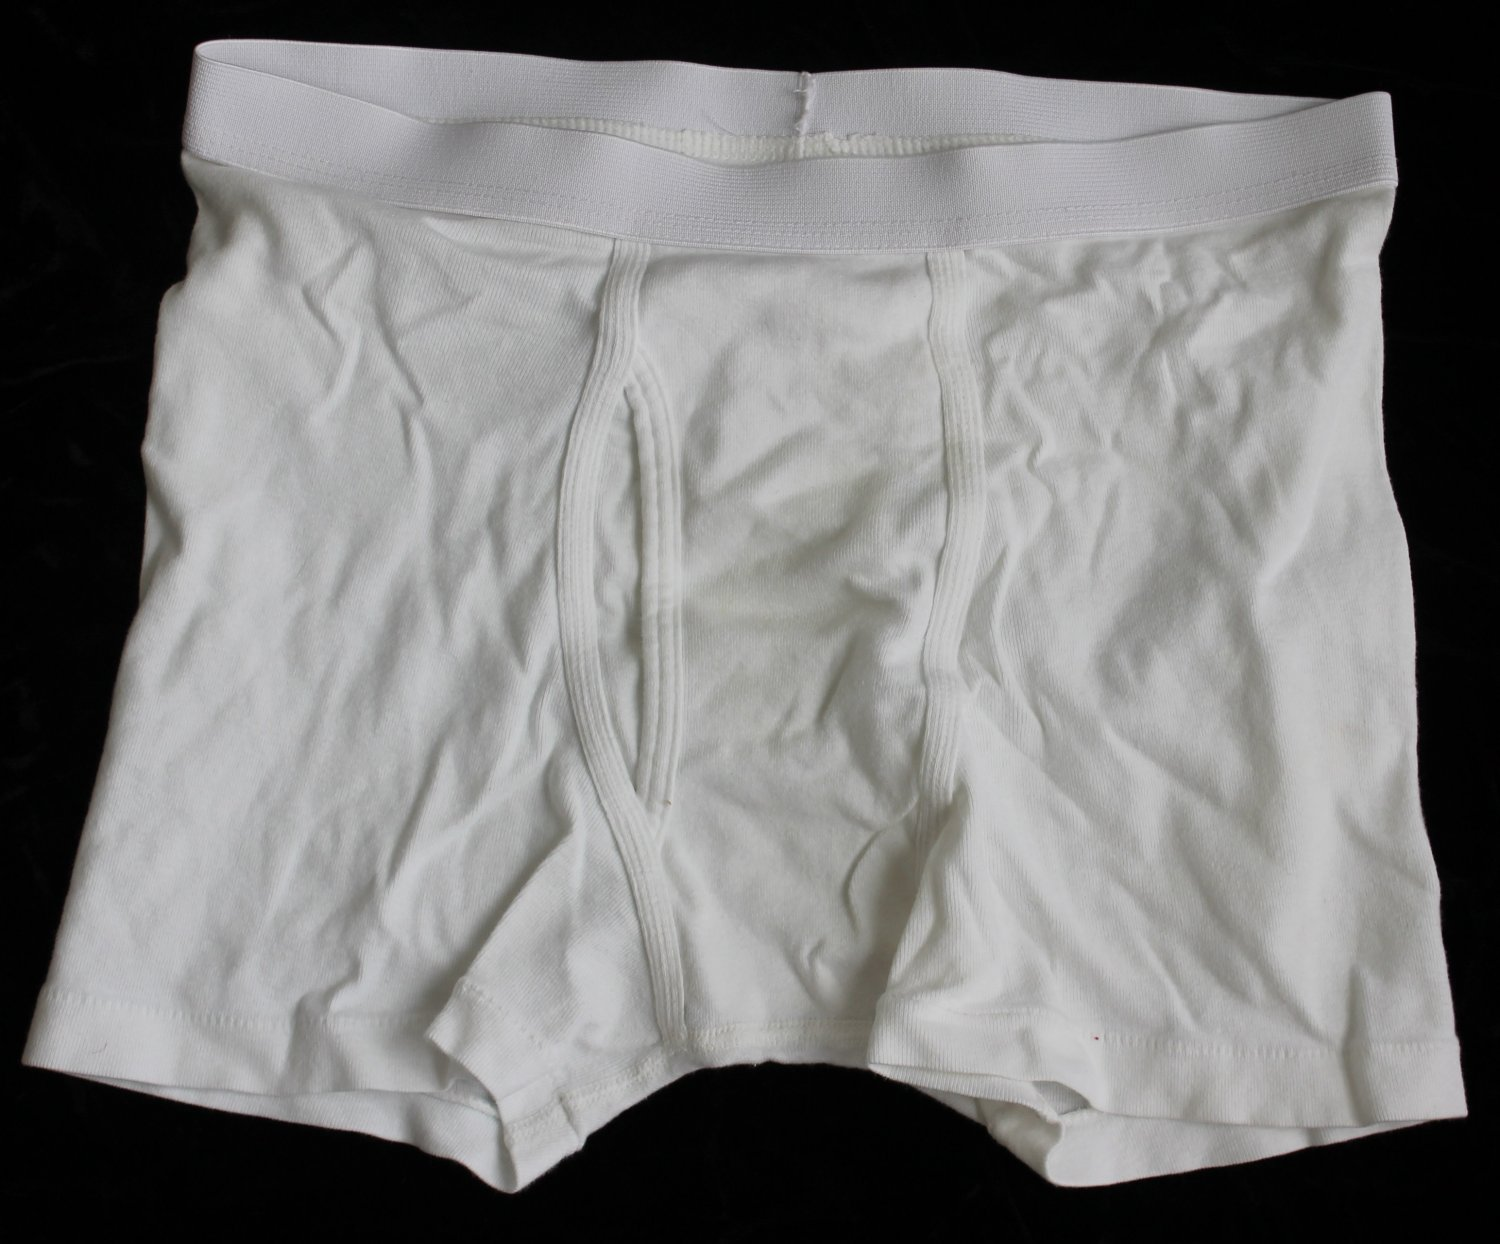 Trailer Trash Men's White Underwear Boxer  Briefs Medium 32-34